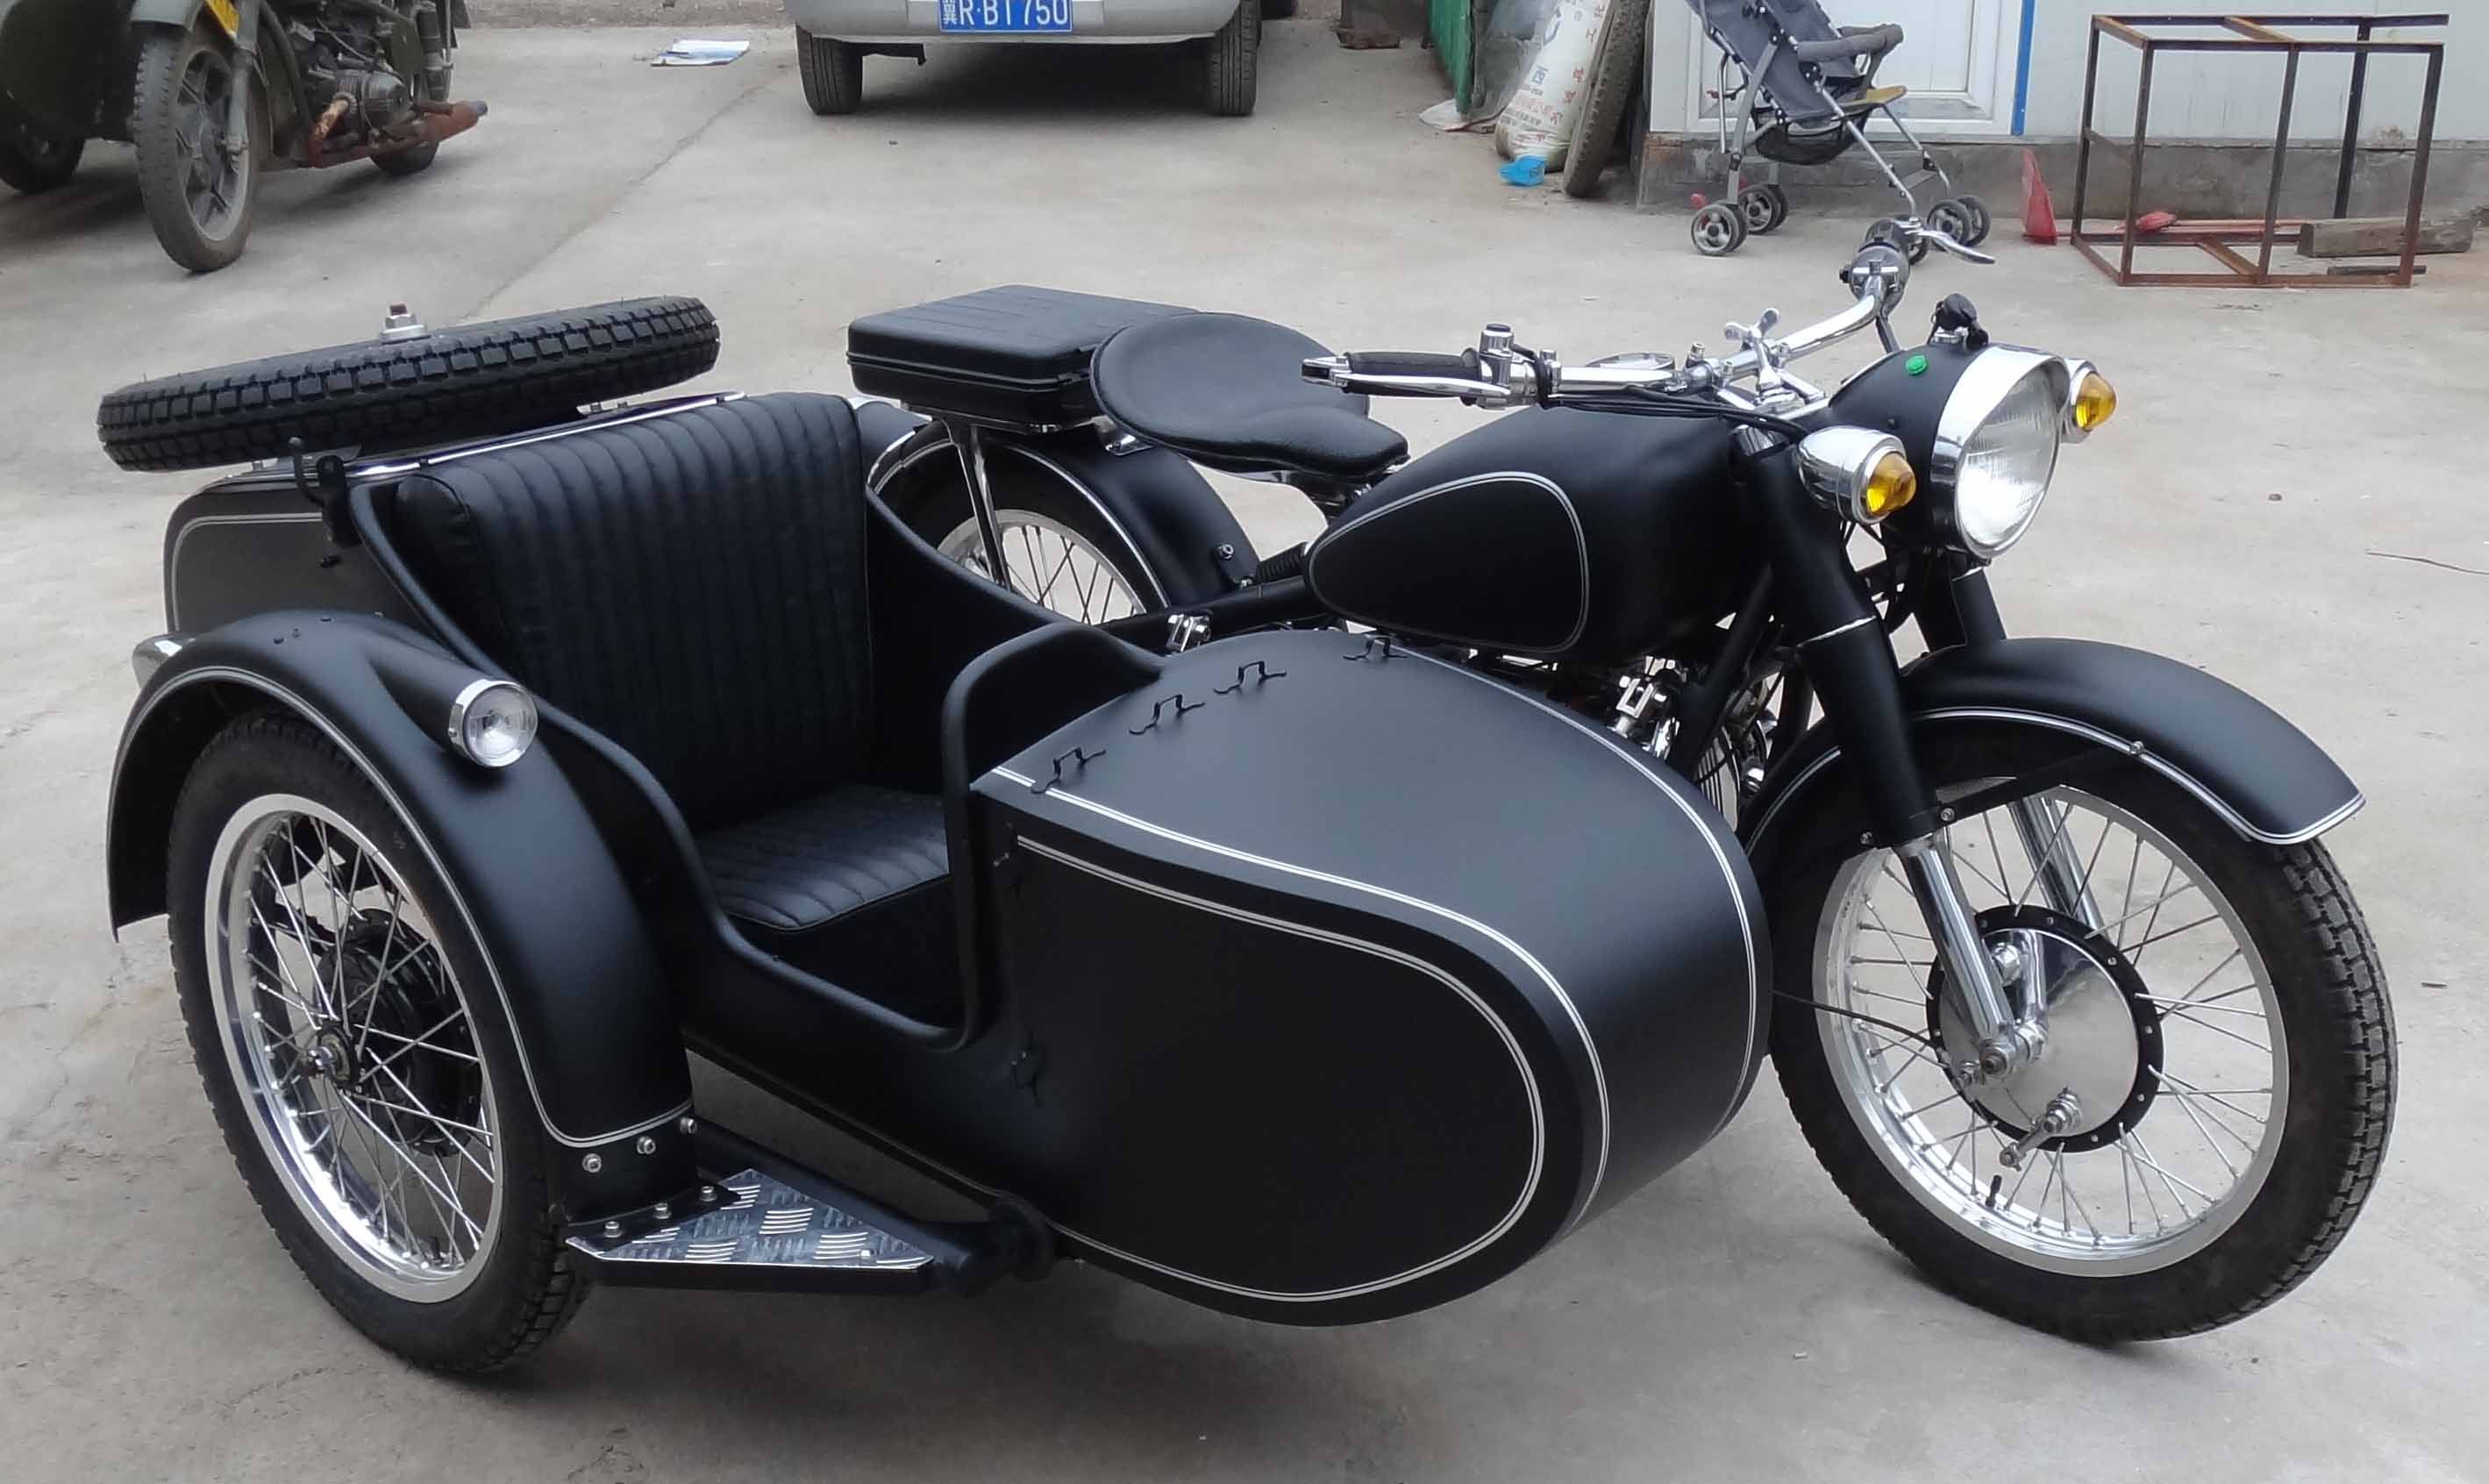 Bikes With Sidecars For Sale Efcacdcb